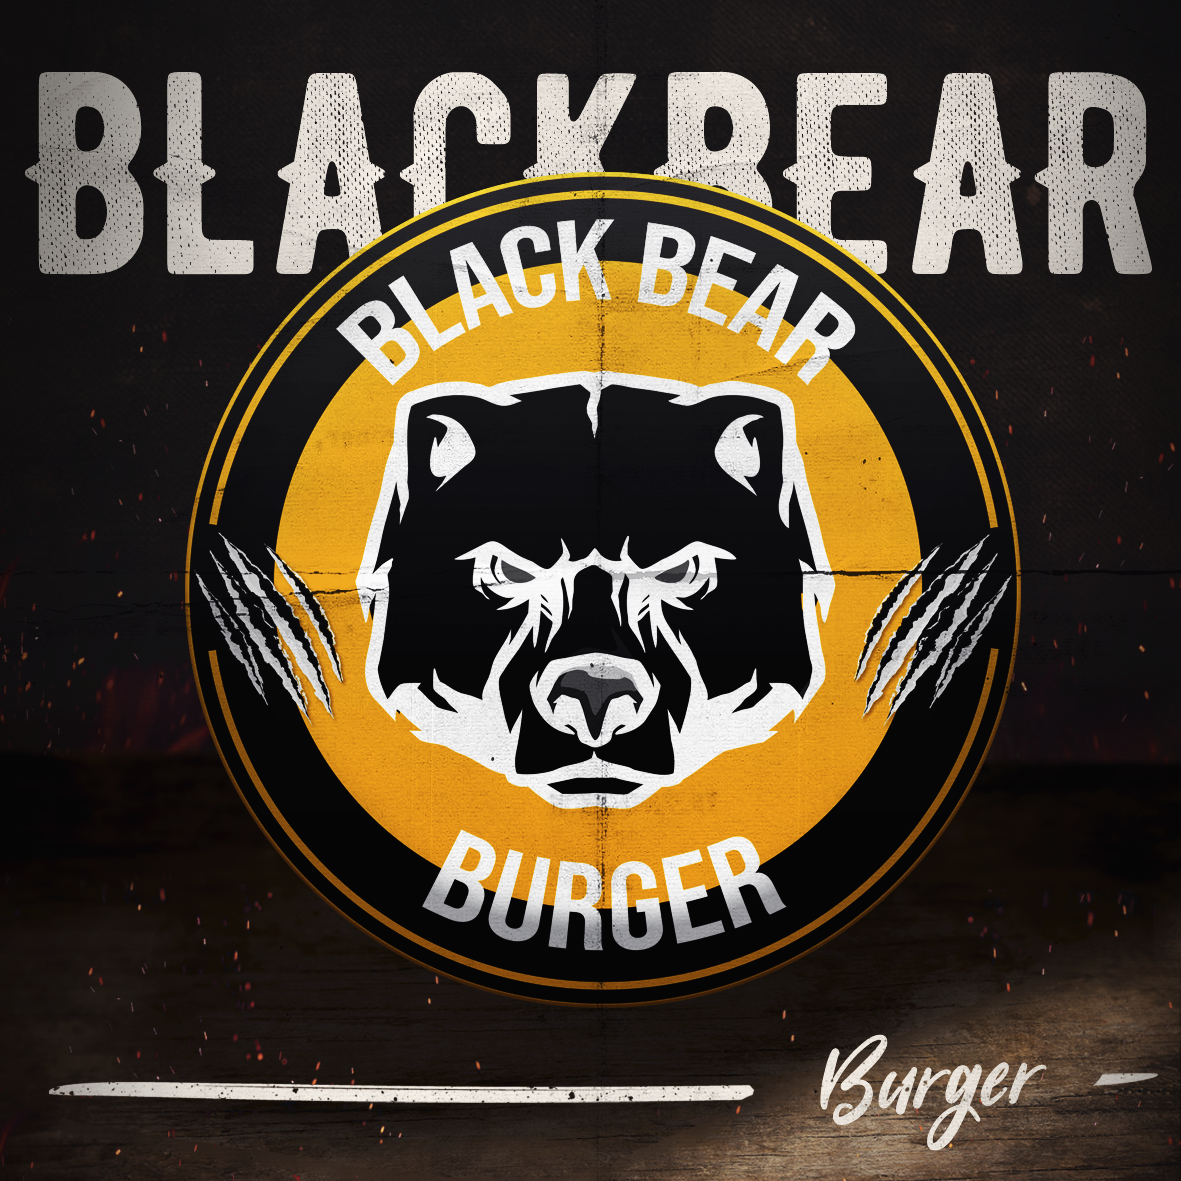 Logo-Hamburgueria - BLACK BEAR BURGER